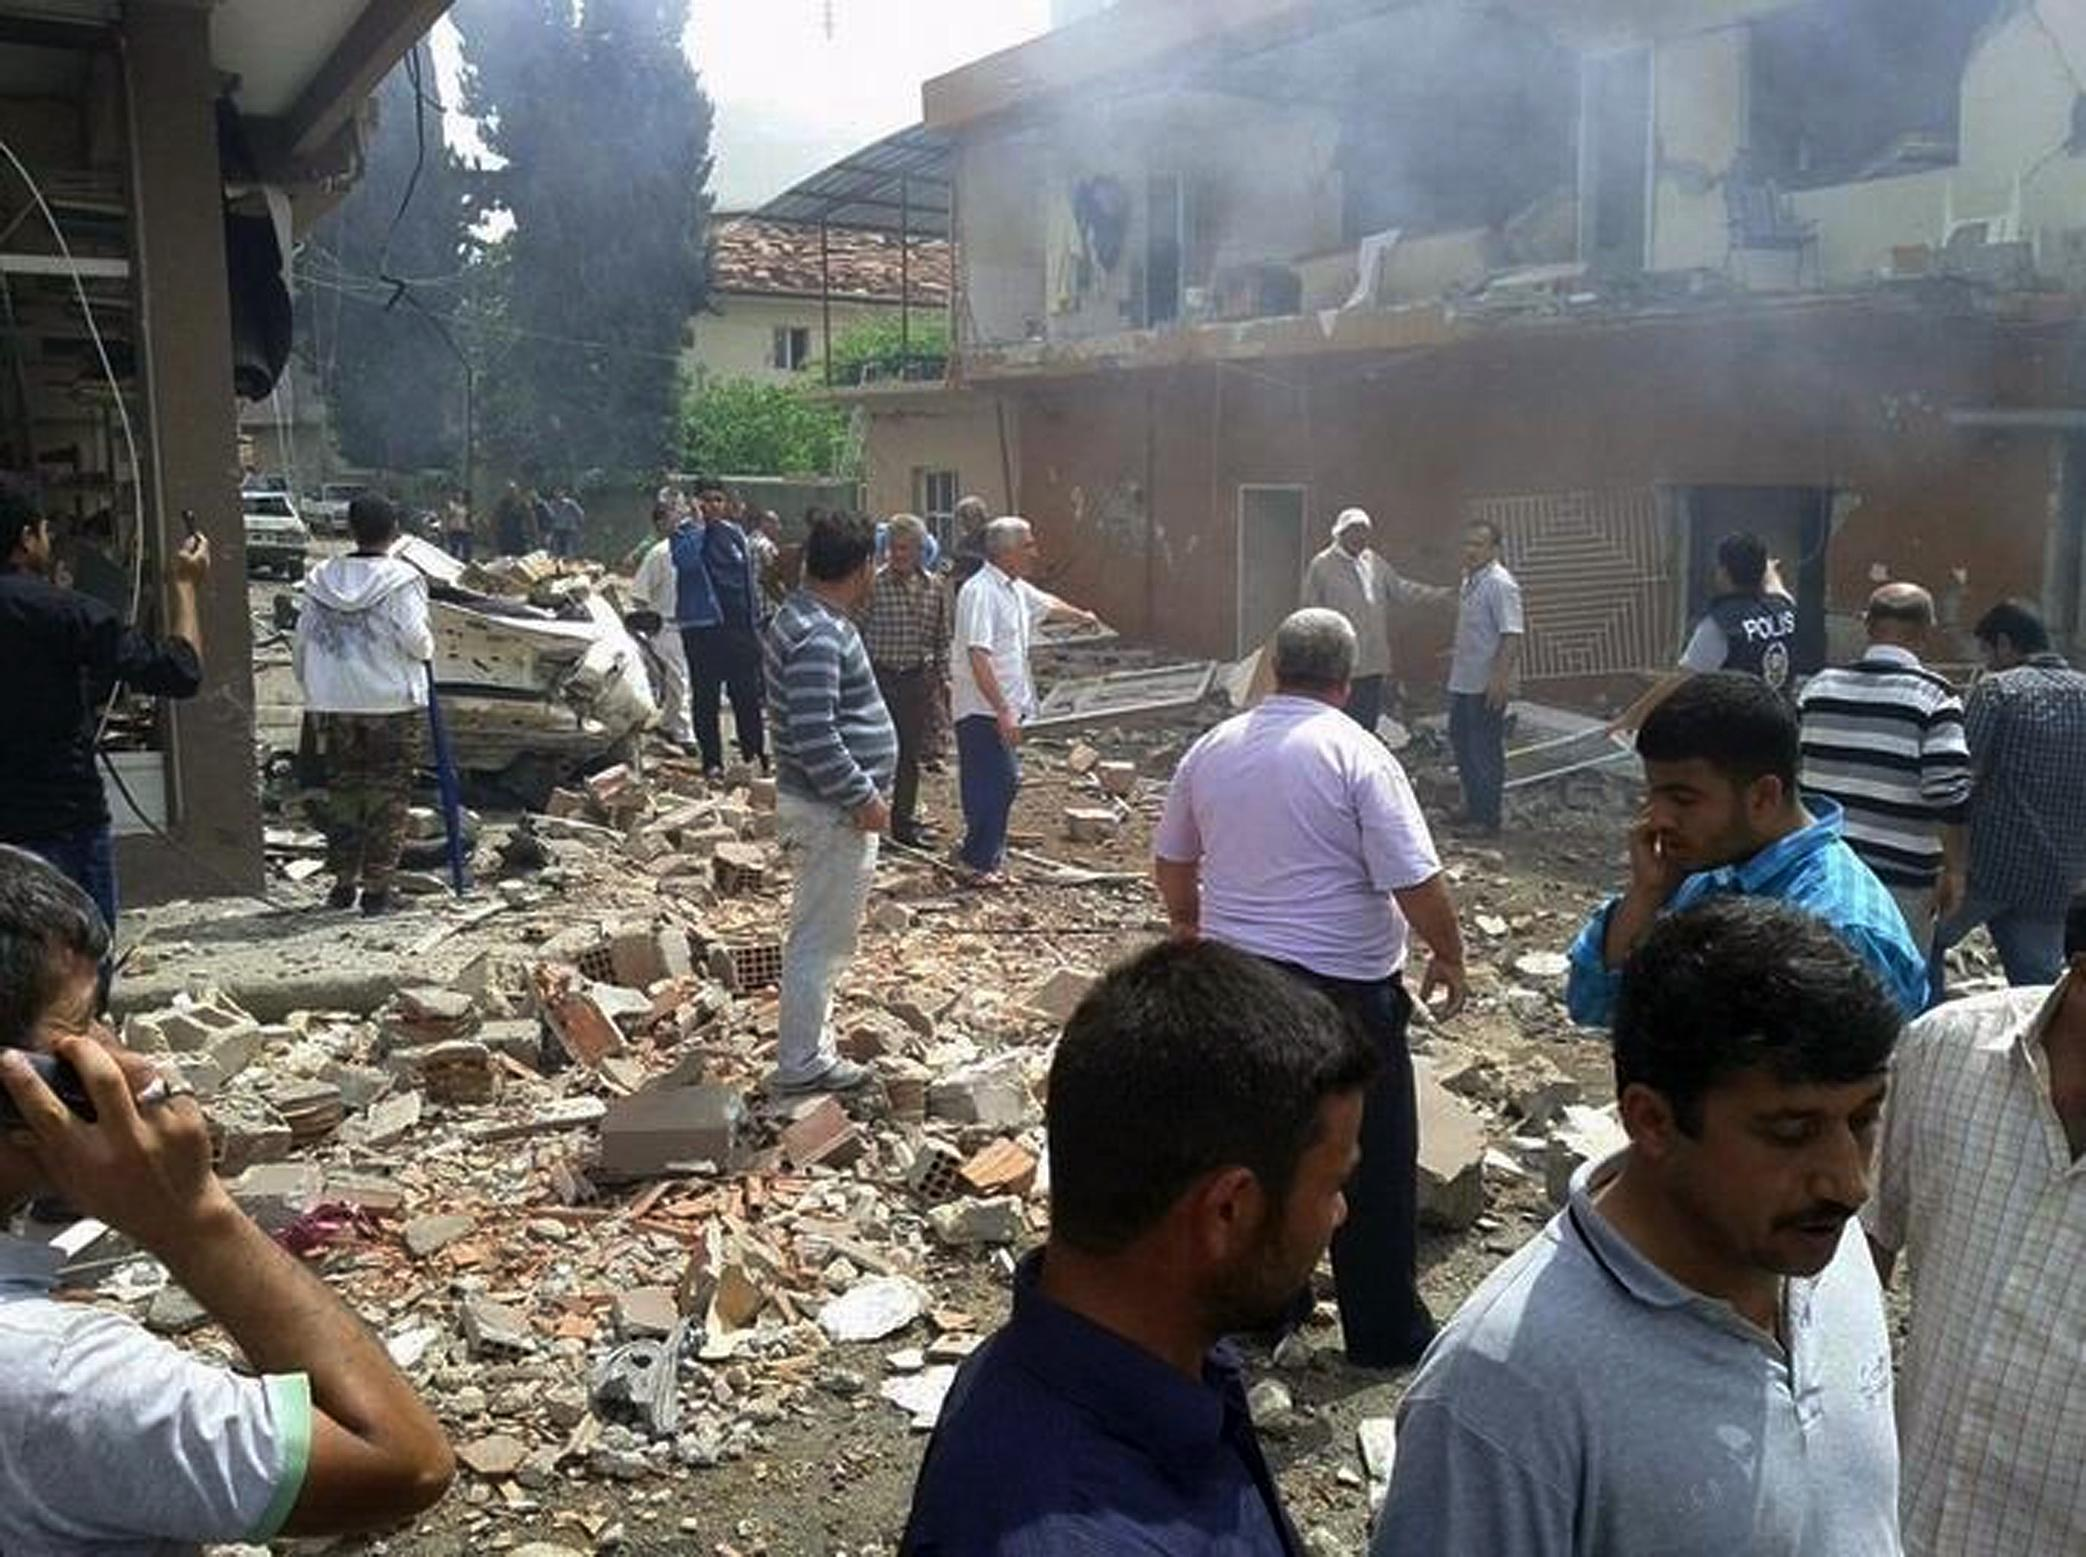 People gather at the site of a blast which killed and injured a number of people in Reyhanli, near Turkey's border with Syria, Saturday, May 11, 2013. Two car bombs exploded in a Turkish town near the border with Syria on Saturday, killing at least four people and injuring 22 others, officials and media reports said. (AP Photo/IHA) TURKEY OUT